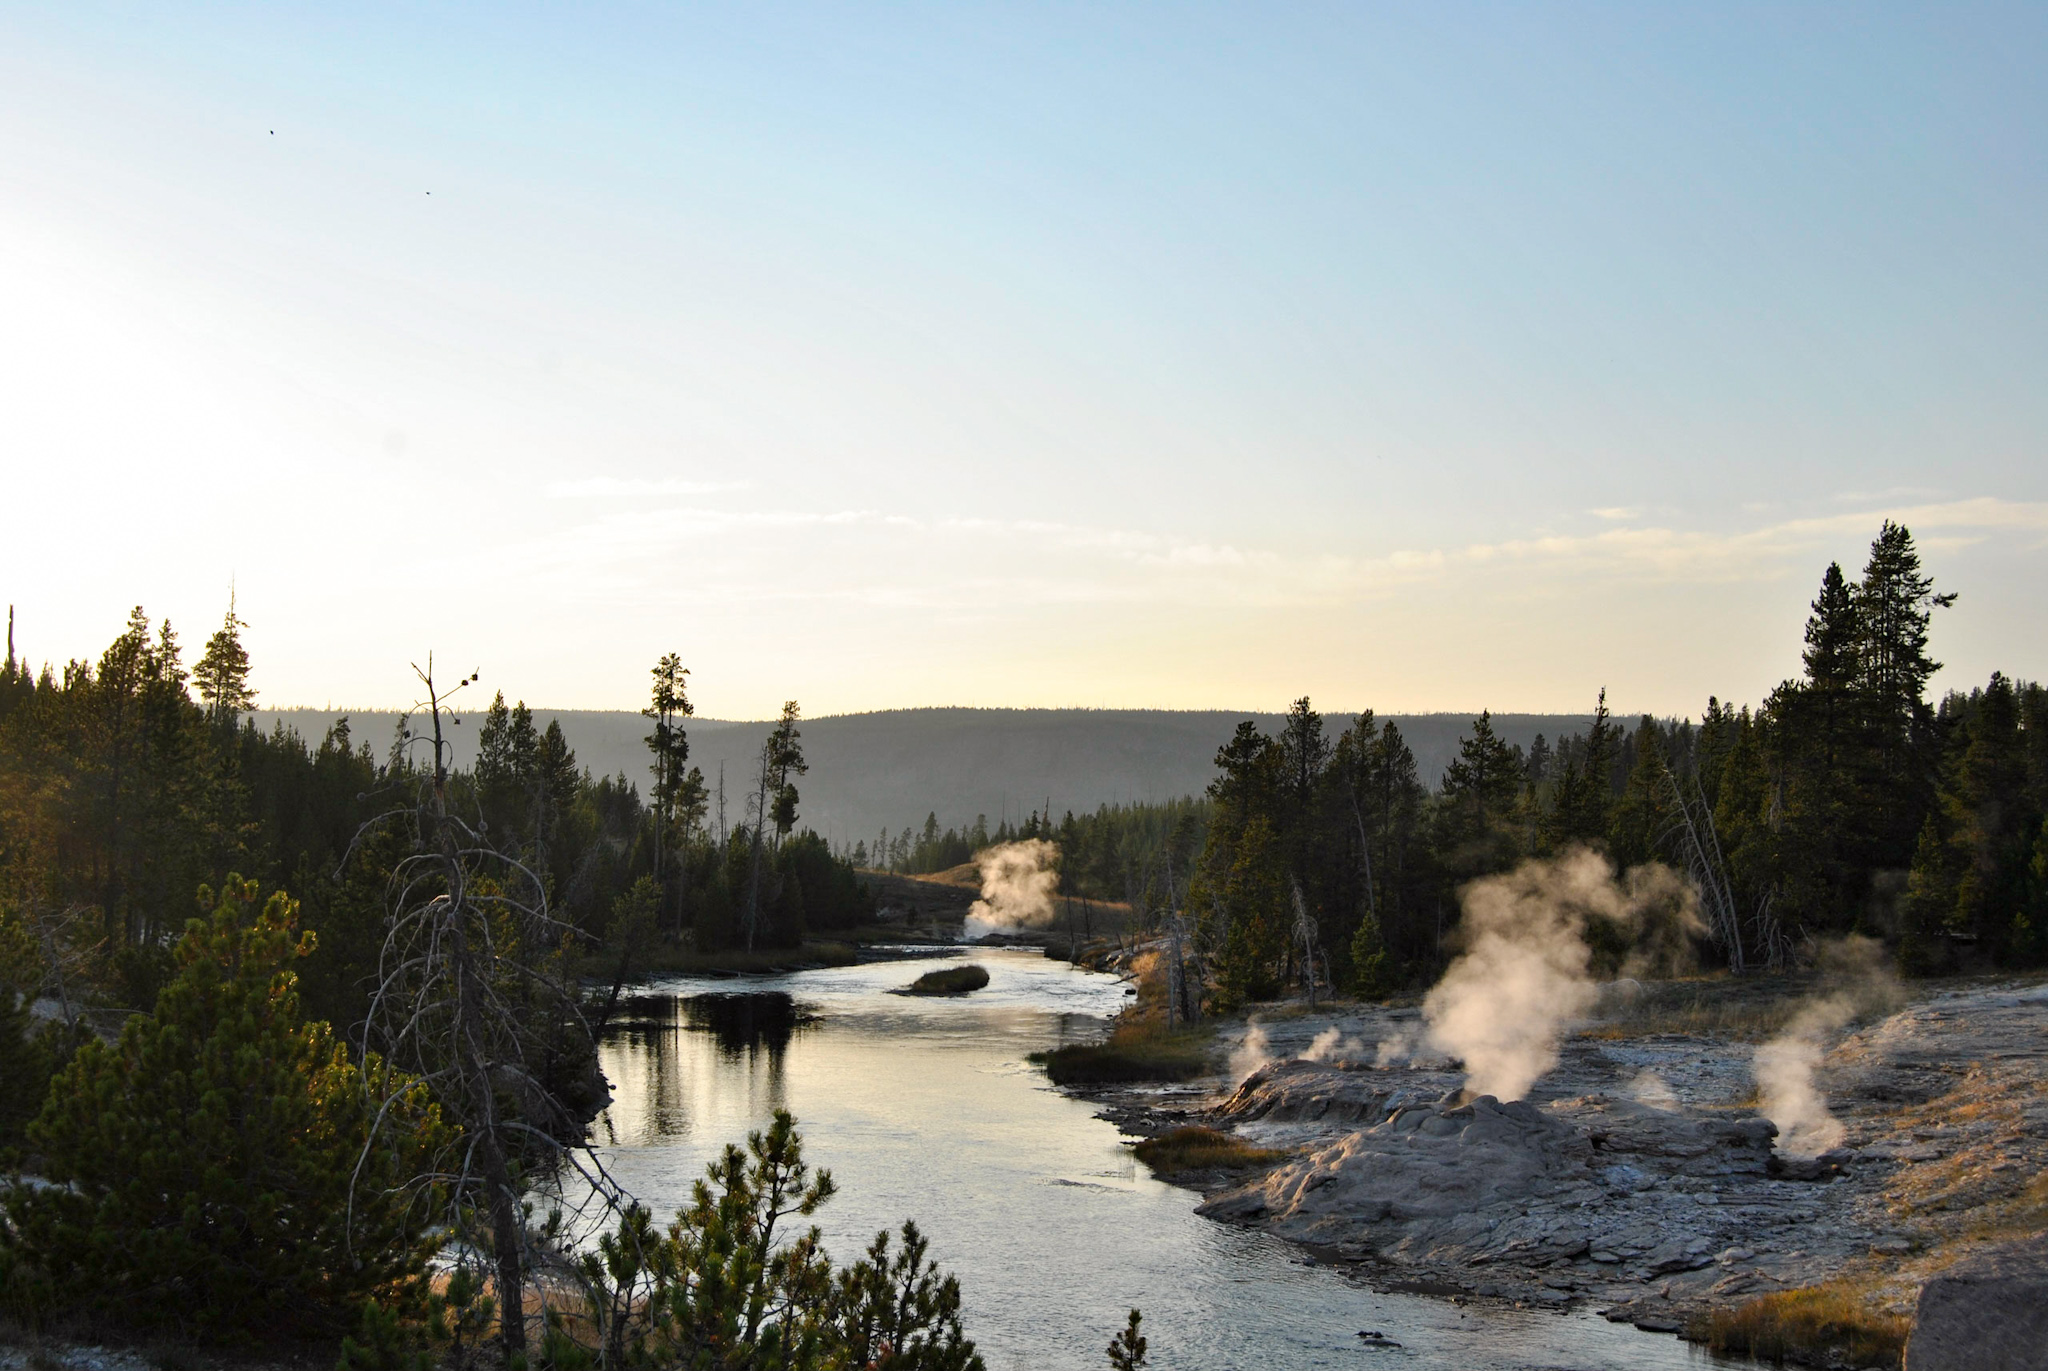 Sunset over the Firehole River, August 2015